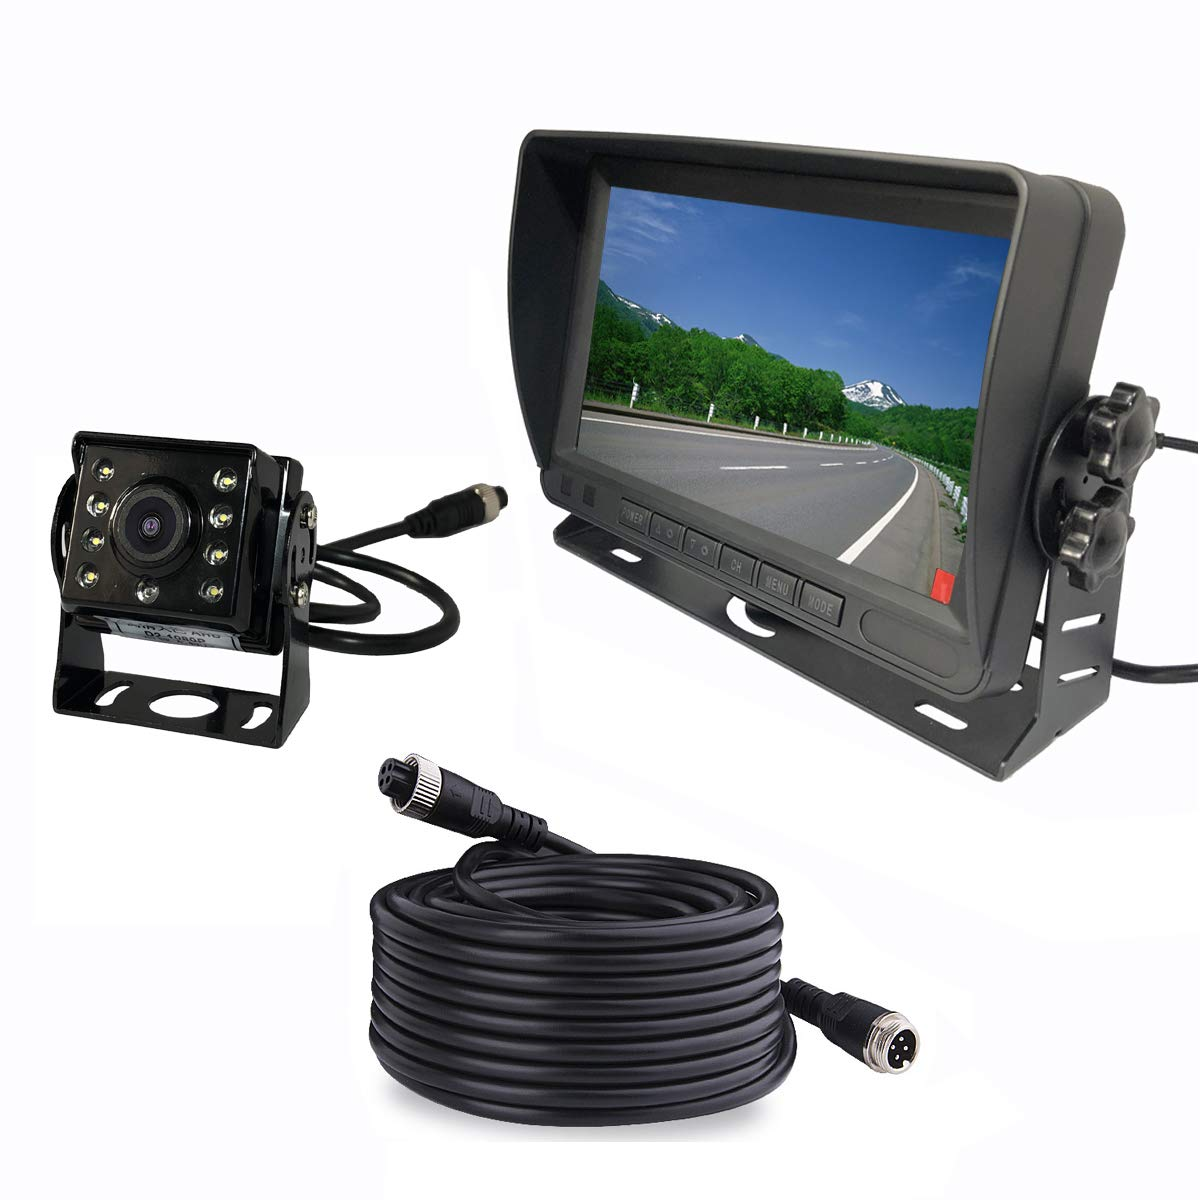 Upgraded Vehicle Backup Rear View Car Truck Camera and Monitor System,IP69 Waterproof Night Vision HD1080P Rear Camera 7 IPS Monitor 12V-24V with 4 Pin 15m Cable for Bus Trailer RV Camper